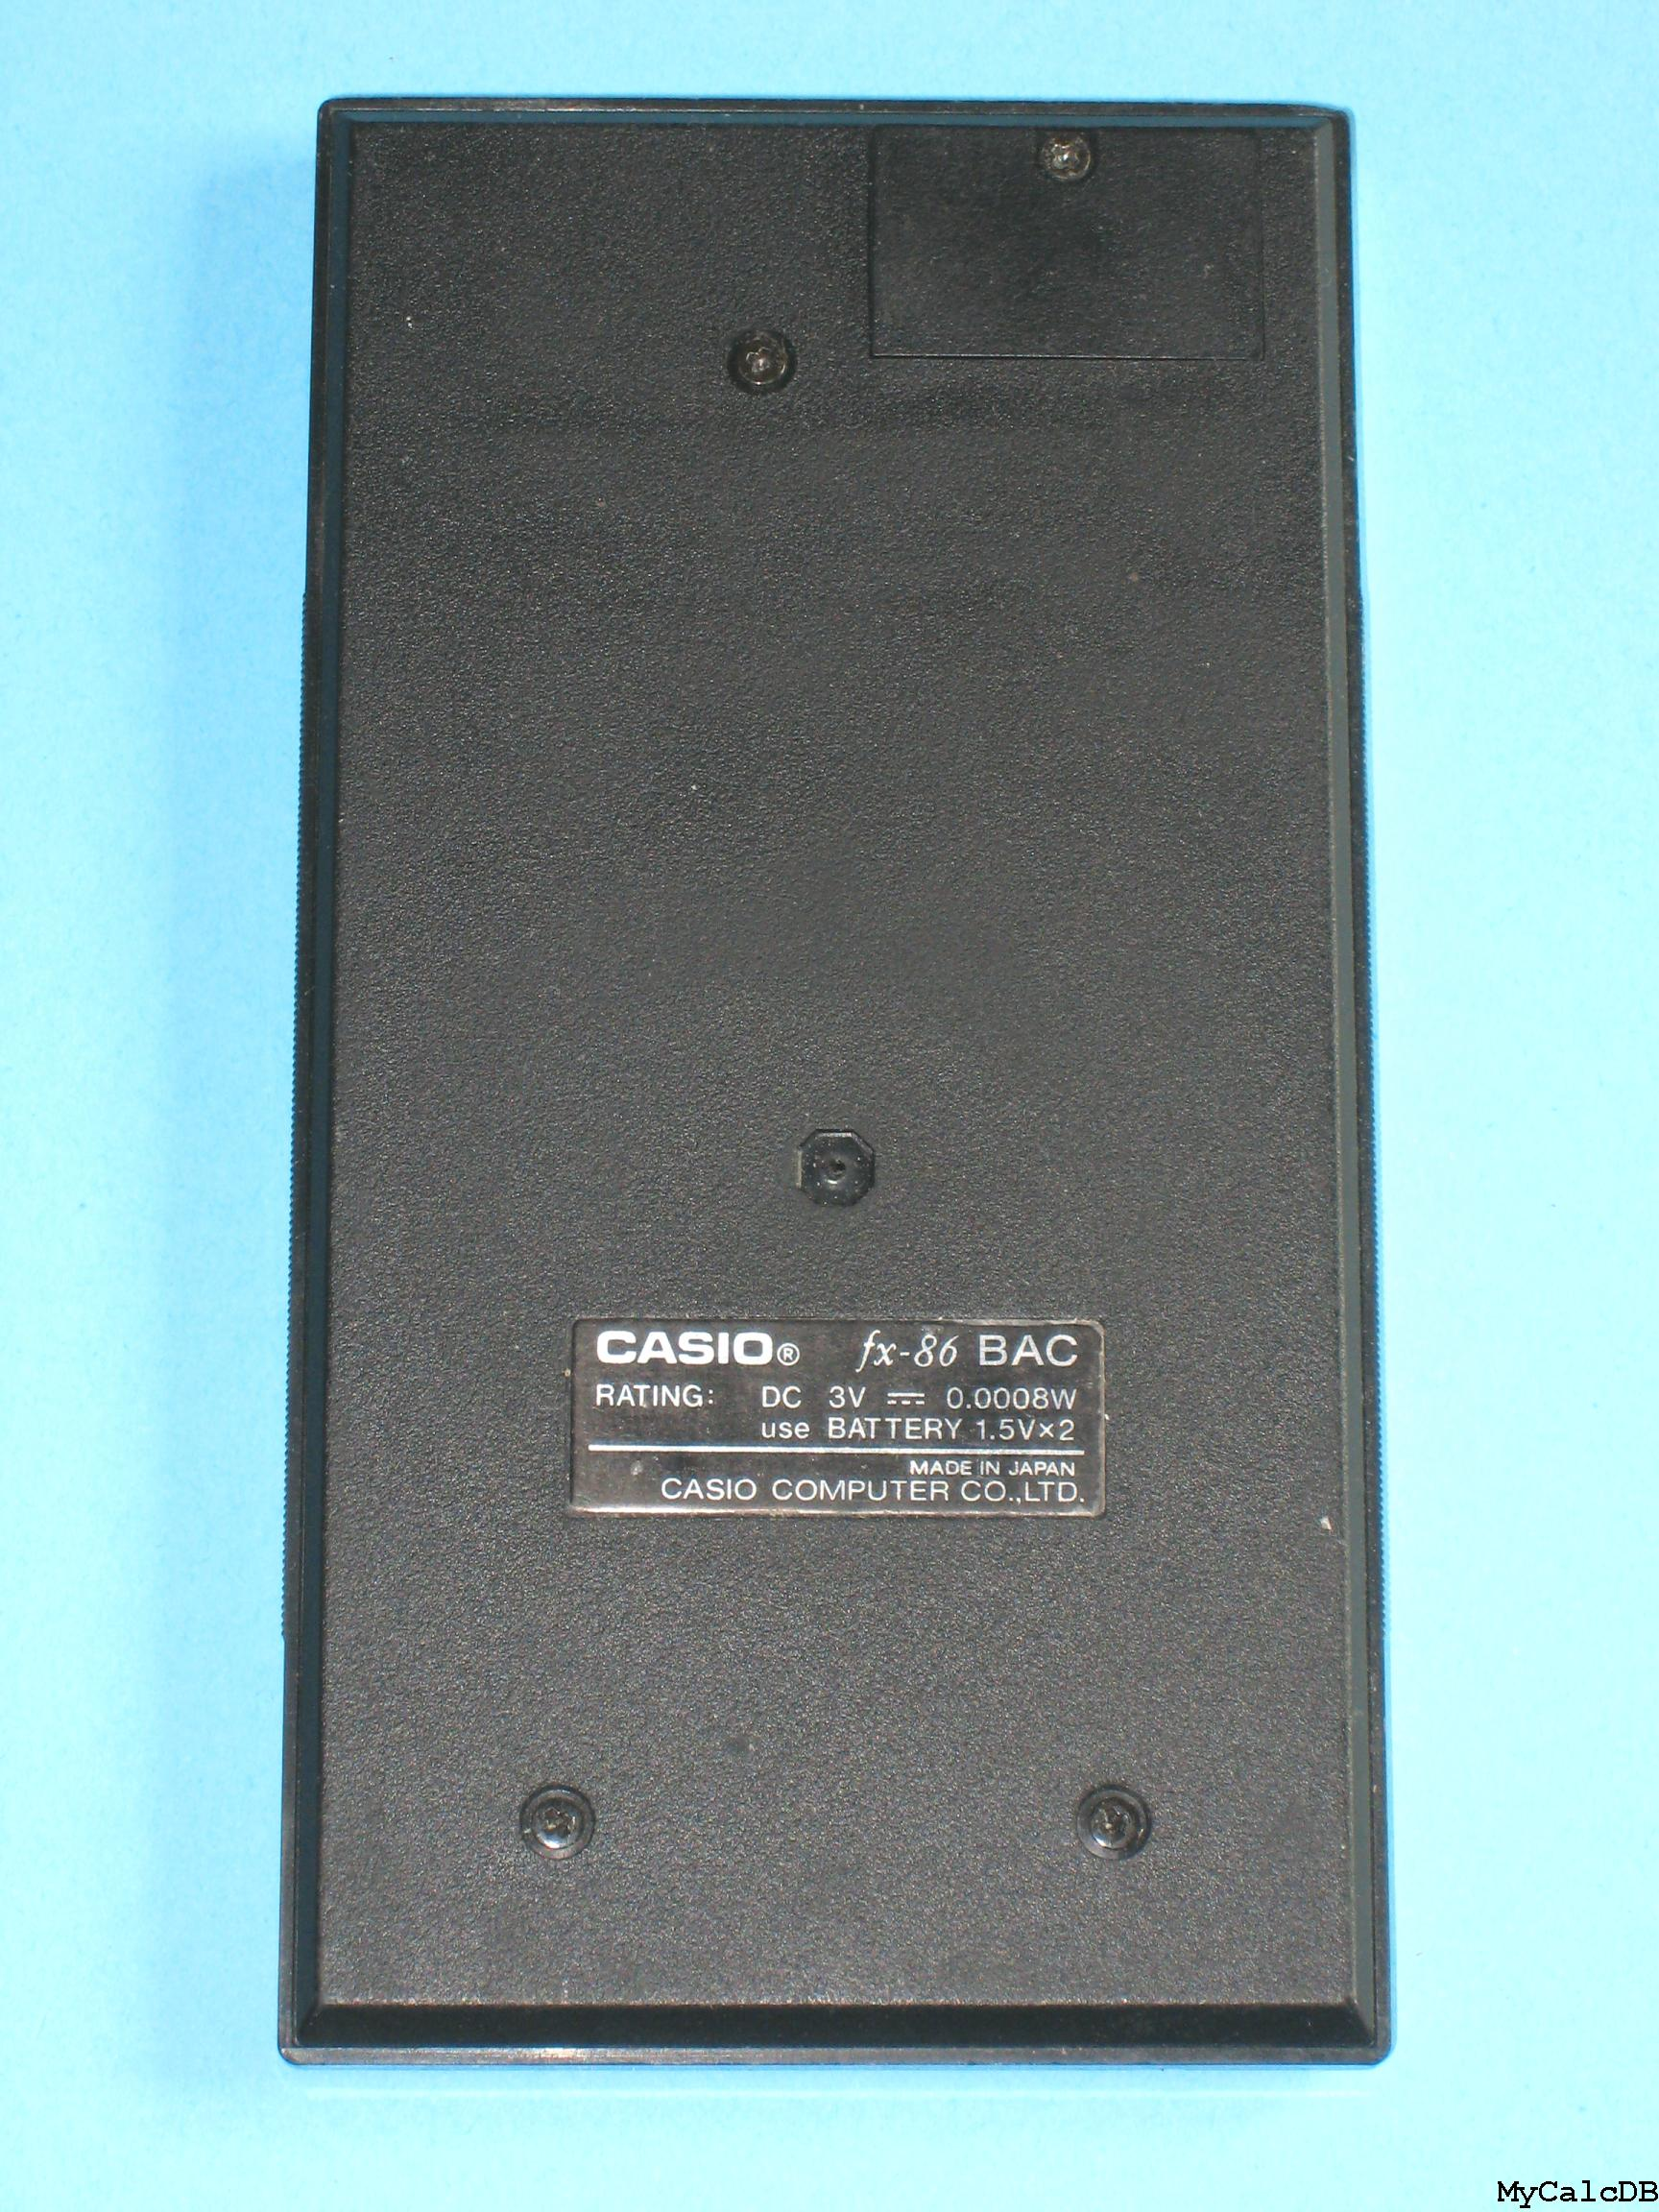 Casio fx-86 BAC